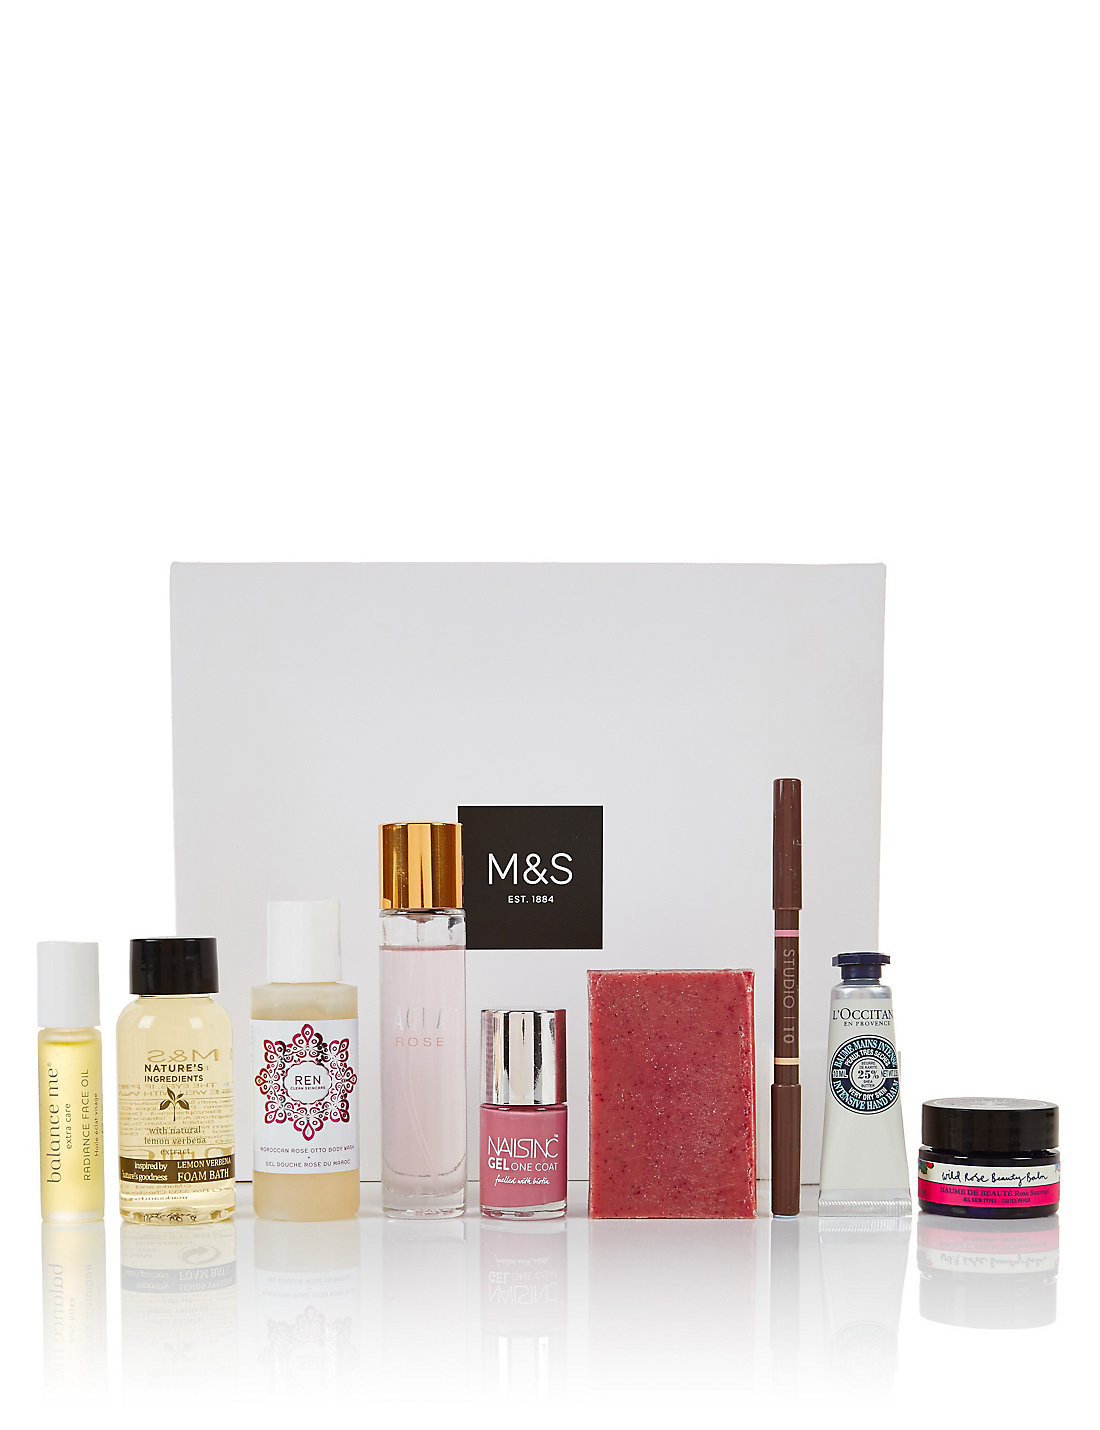 Marks and Spencer Mother's Day beauty box contents worth £ ...